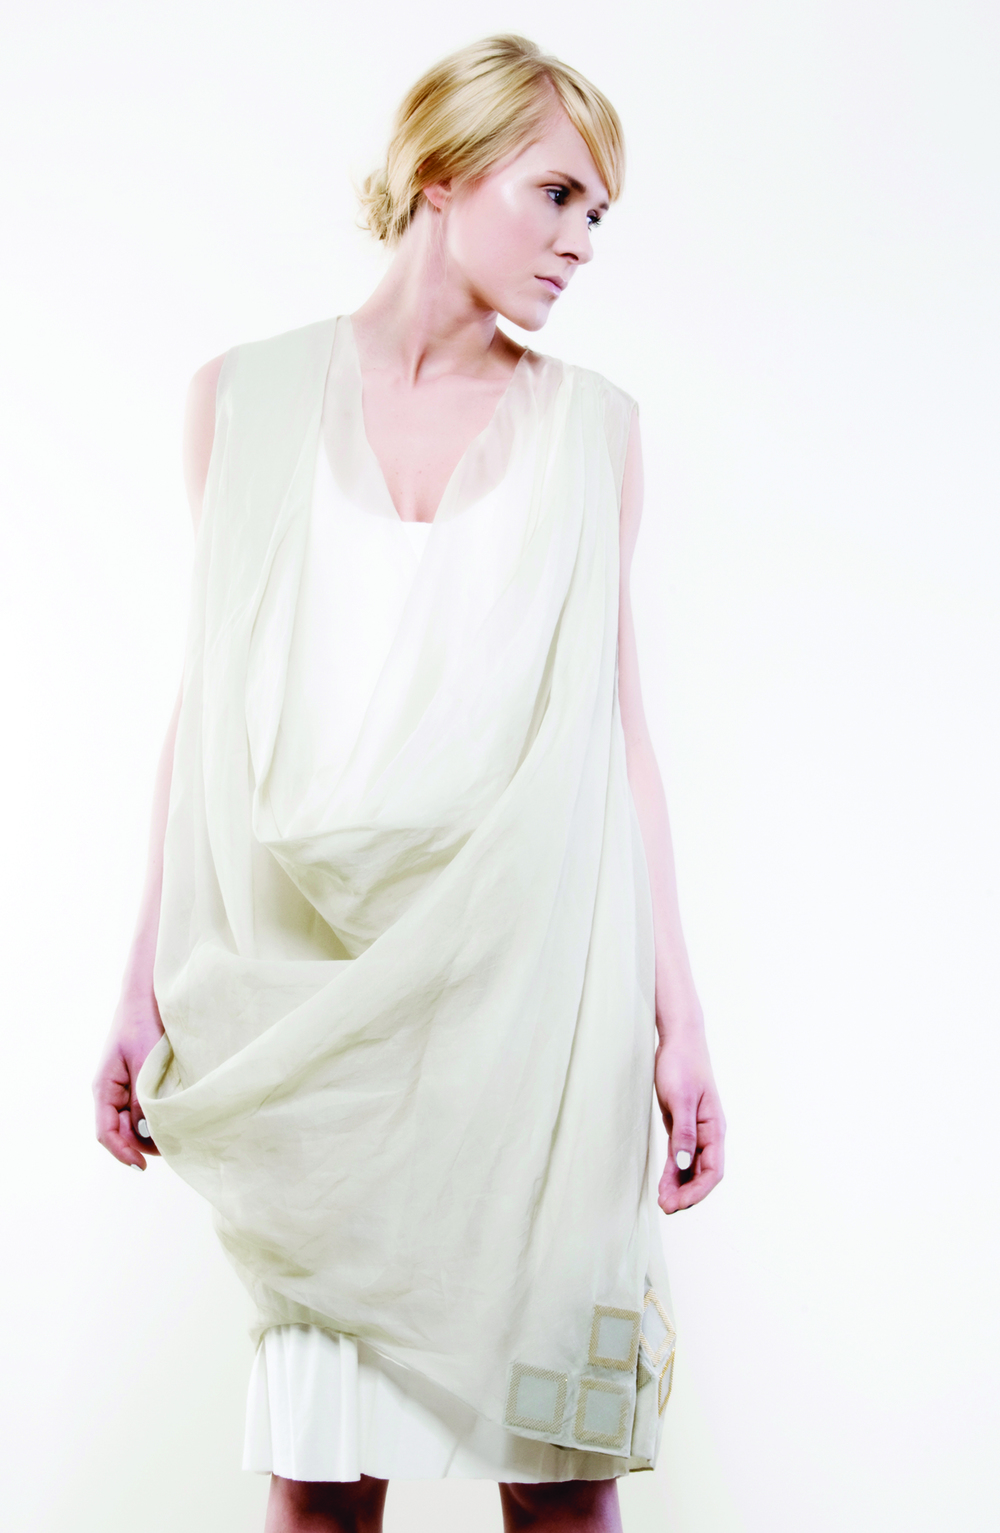 outfit-2-Gravity-and-Levitation-Spring-Summer-Collection-Isabel-Wong-Light-Green-Organdy-Gold-CPU-draped-dress.jpg